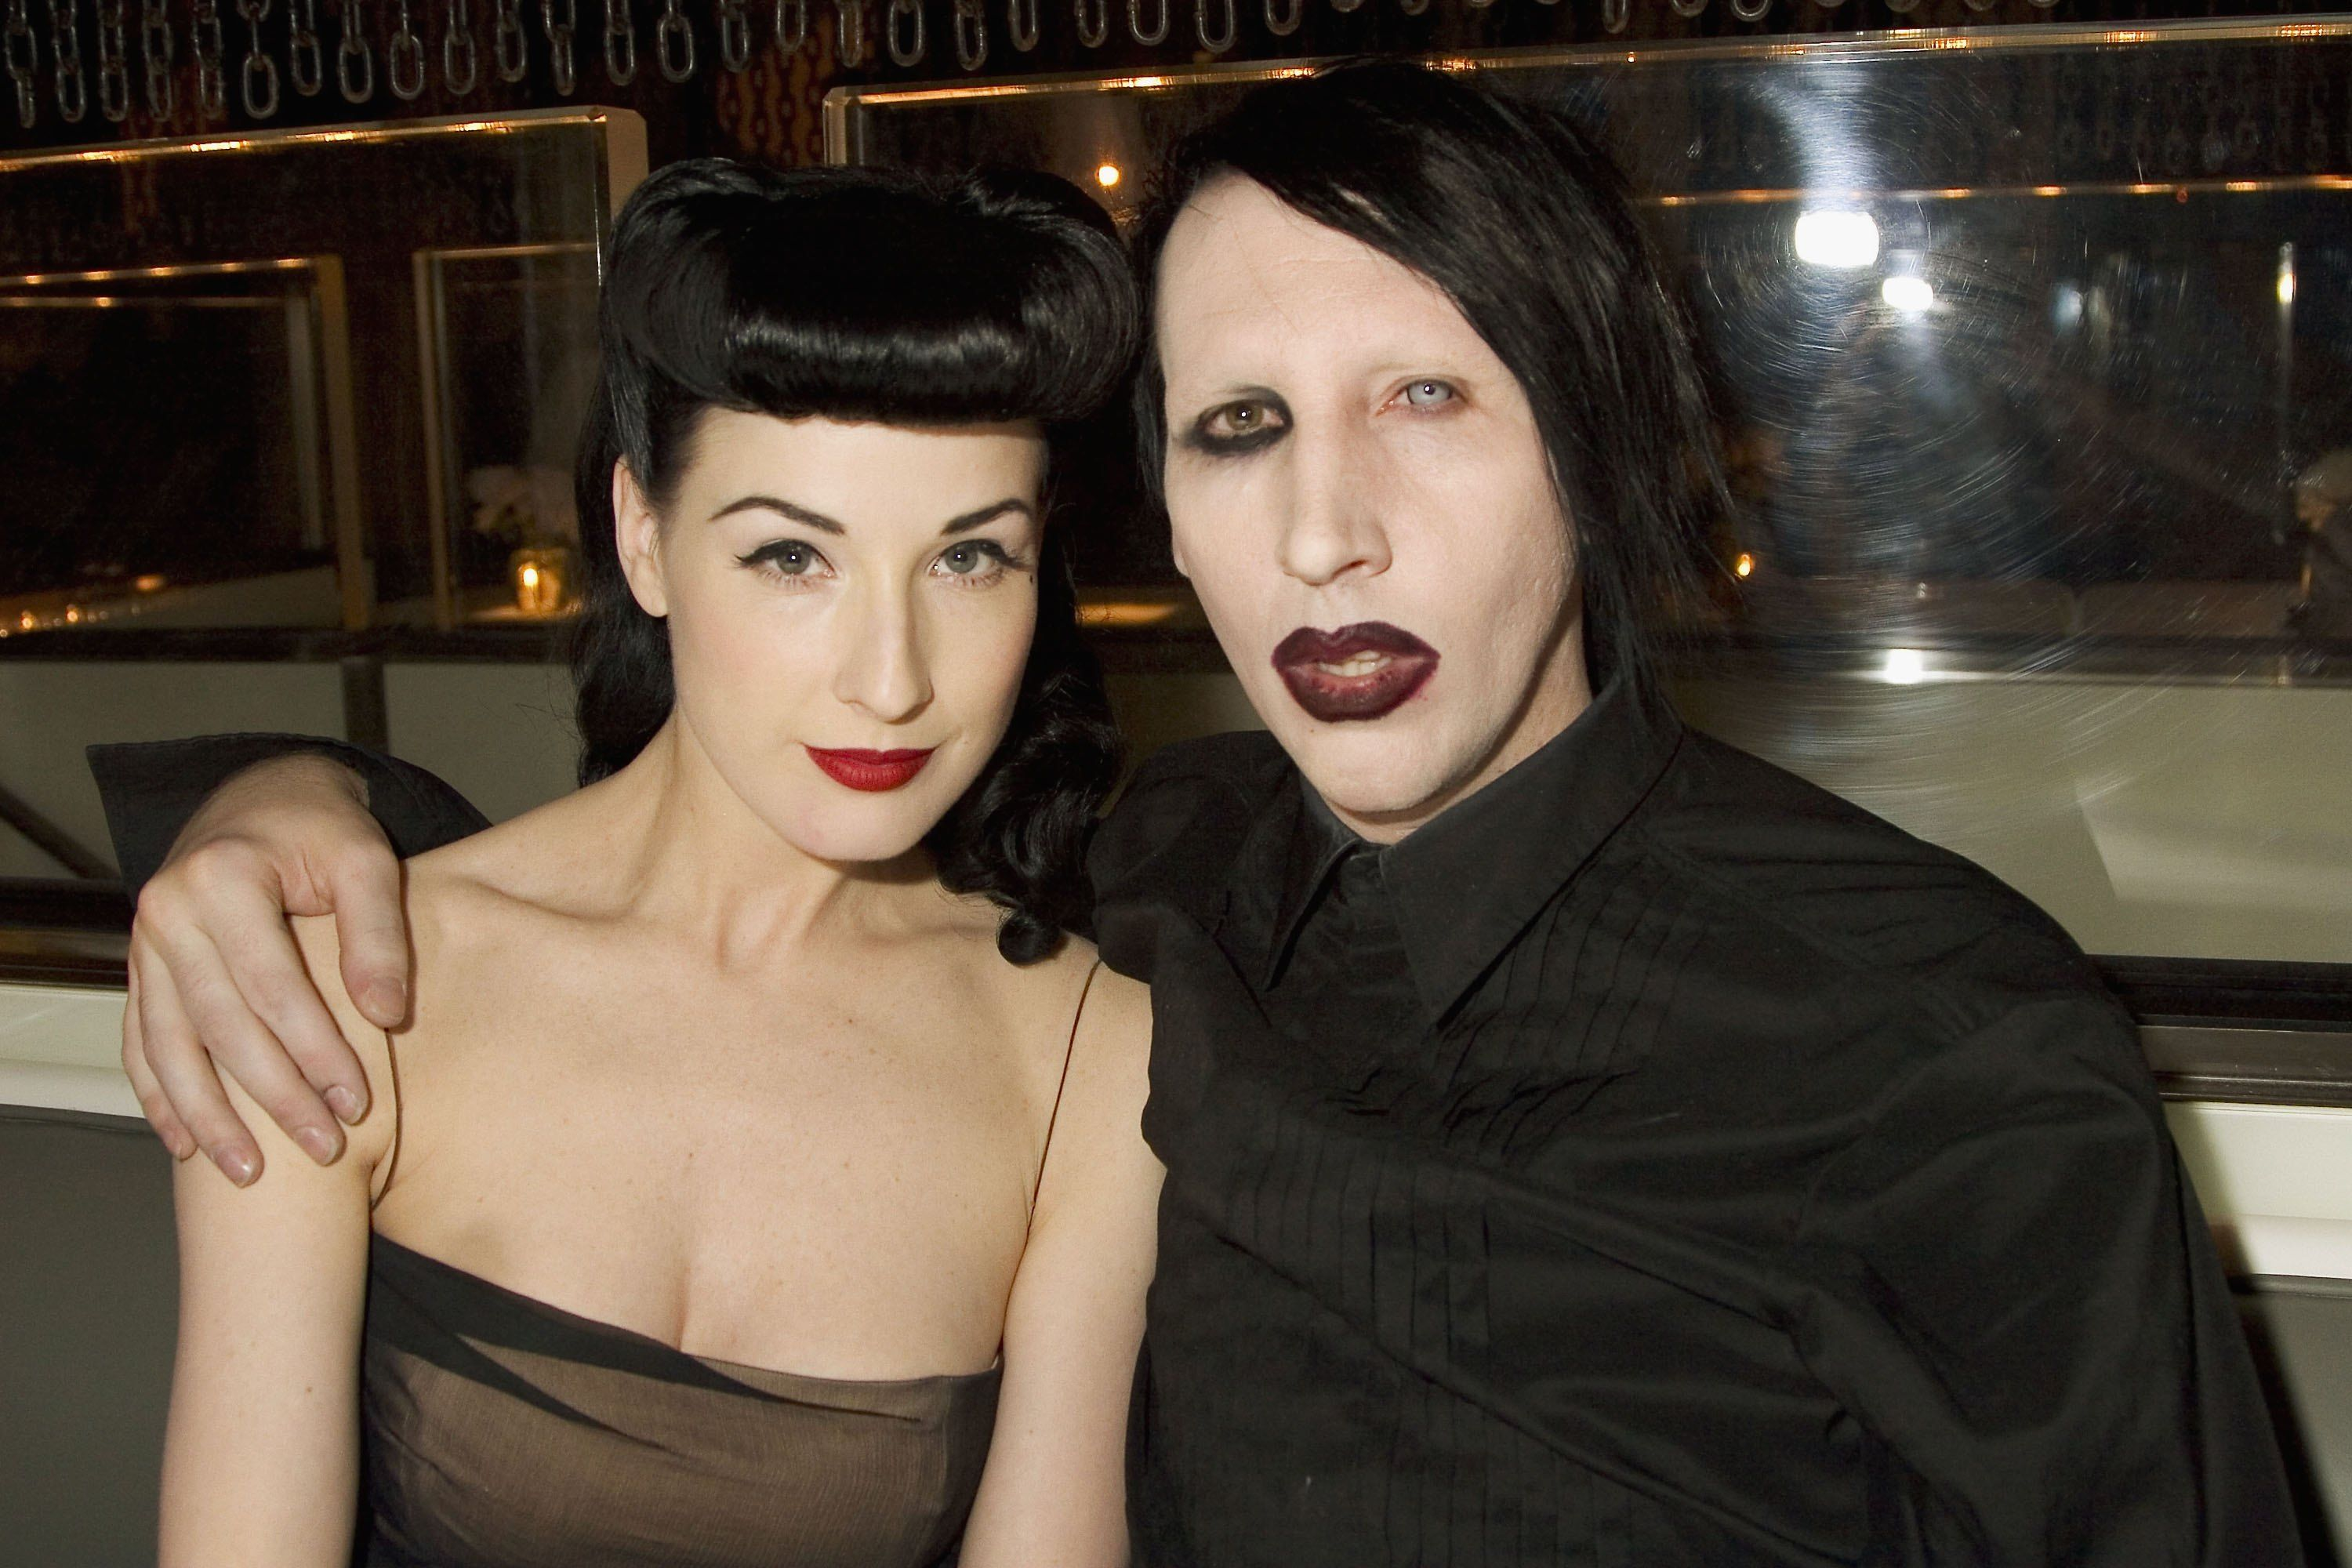 Dita Von Teese and Marilyn Manson atthe opening of MR CHOW Tribeca on May 4, 2006 in New York. | Photo: Getty Images